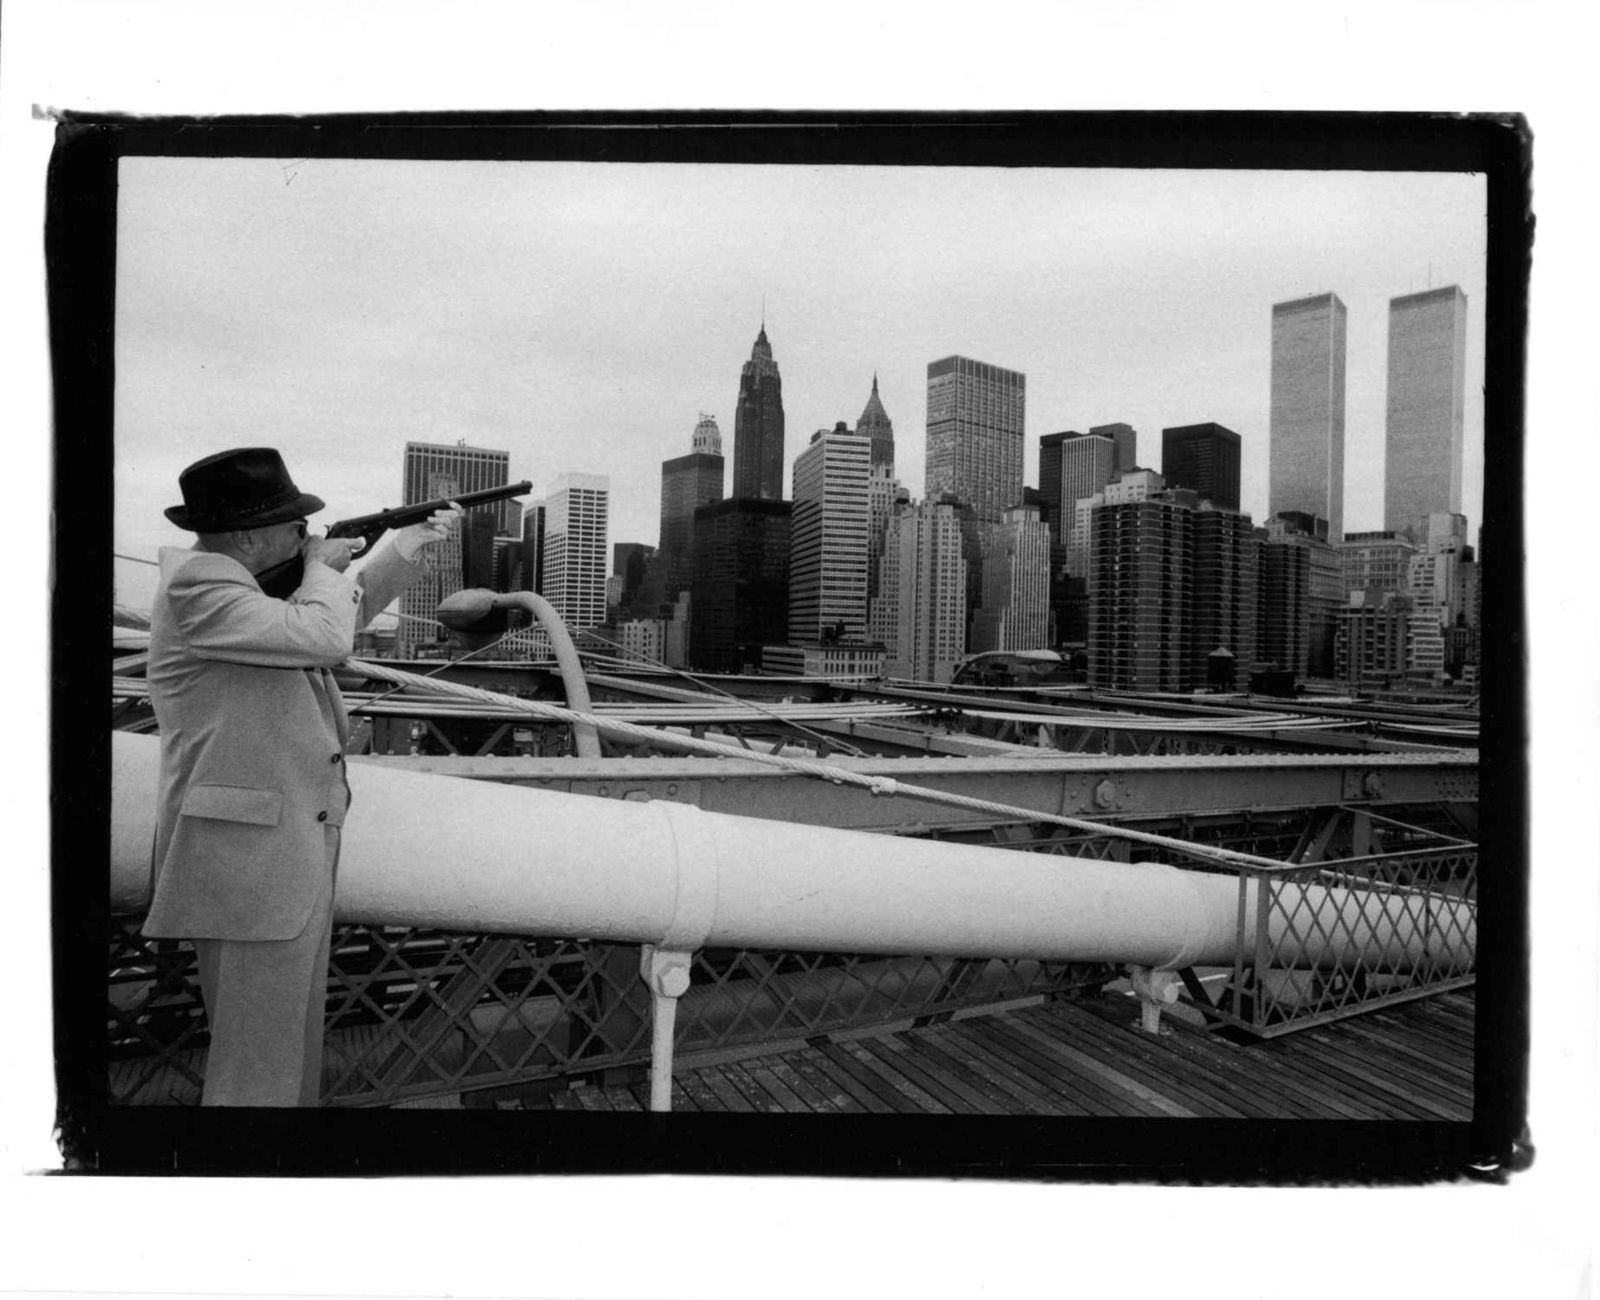 """William Burroughs takes aim at New York's Twin Towers from Brooklyn Bridge"" de Gérard MALANGA - Courtesy Caroline SMULDERS"